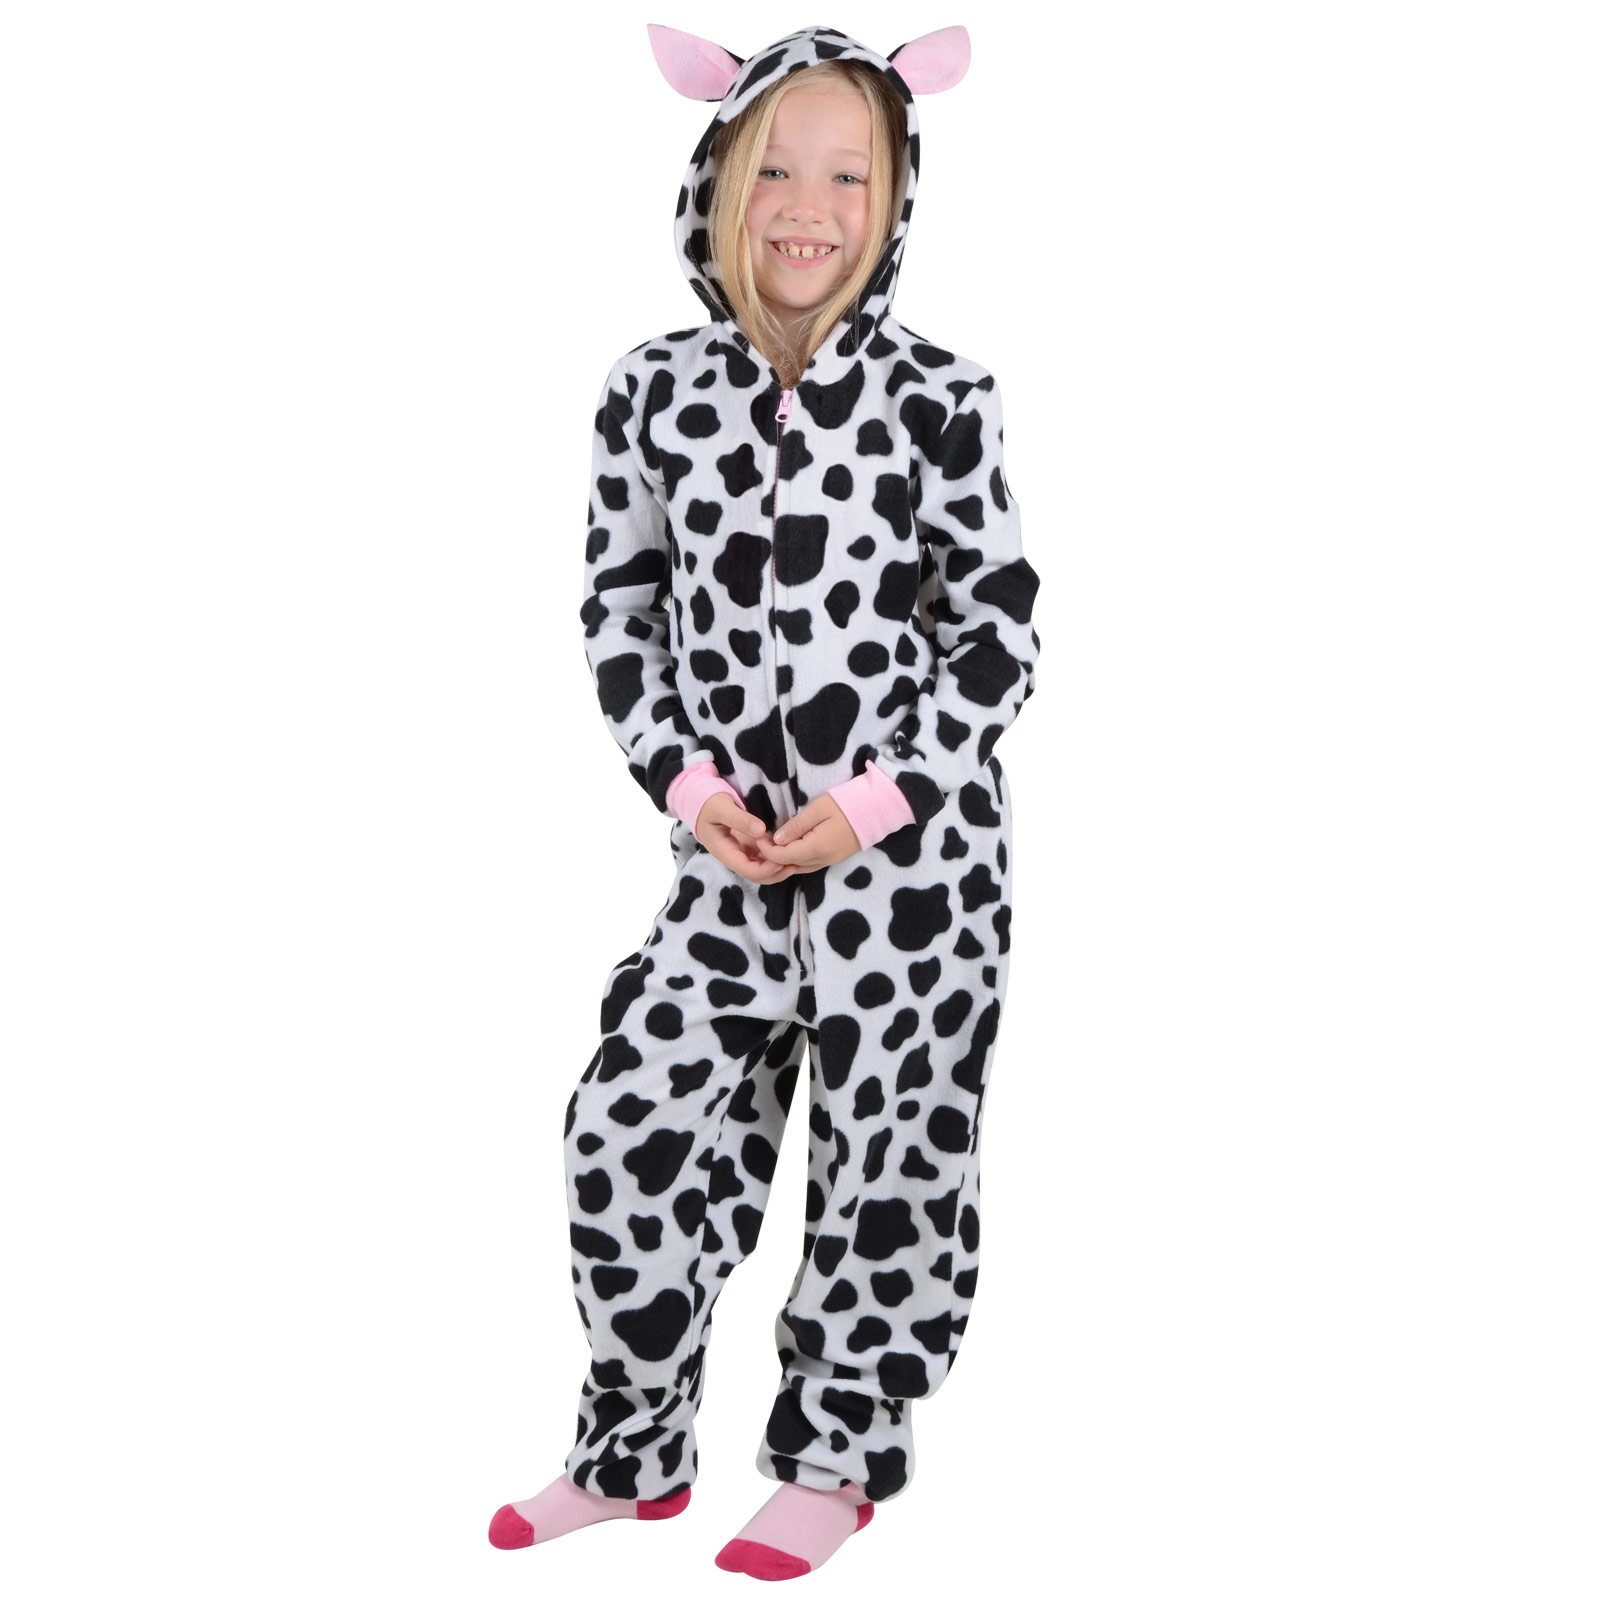 60afb8c500896 Girls Hooded Fleece All In One Piece Pyjamas Jump Sleep Suit Onesie ...